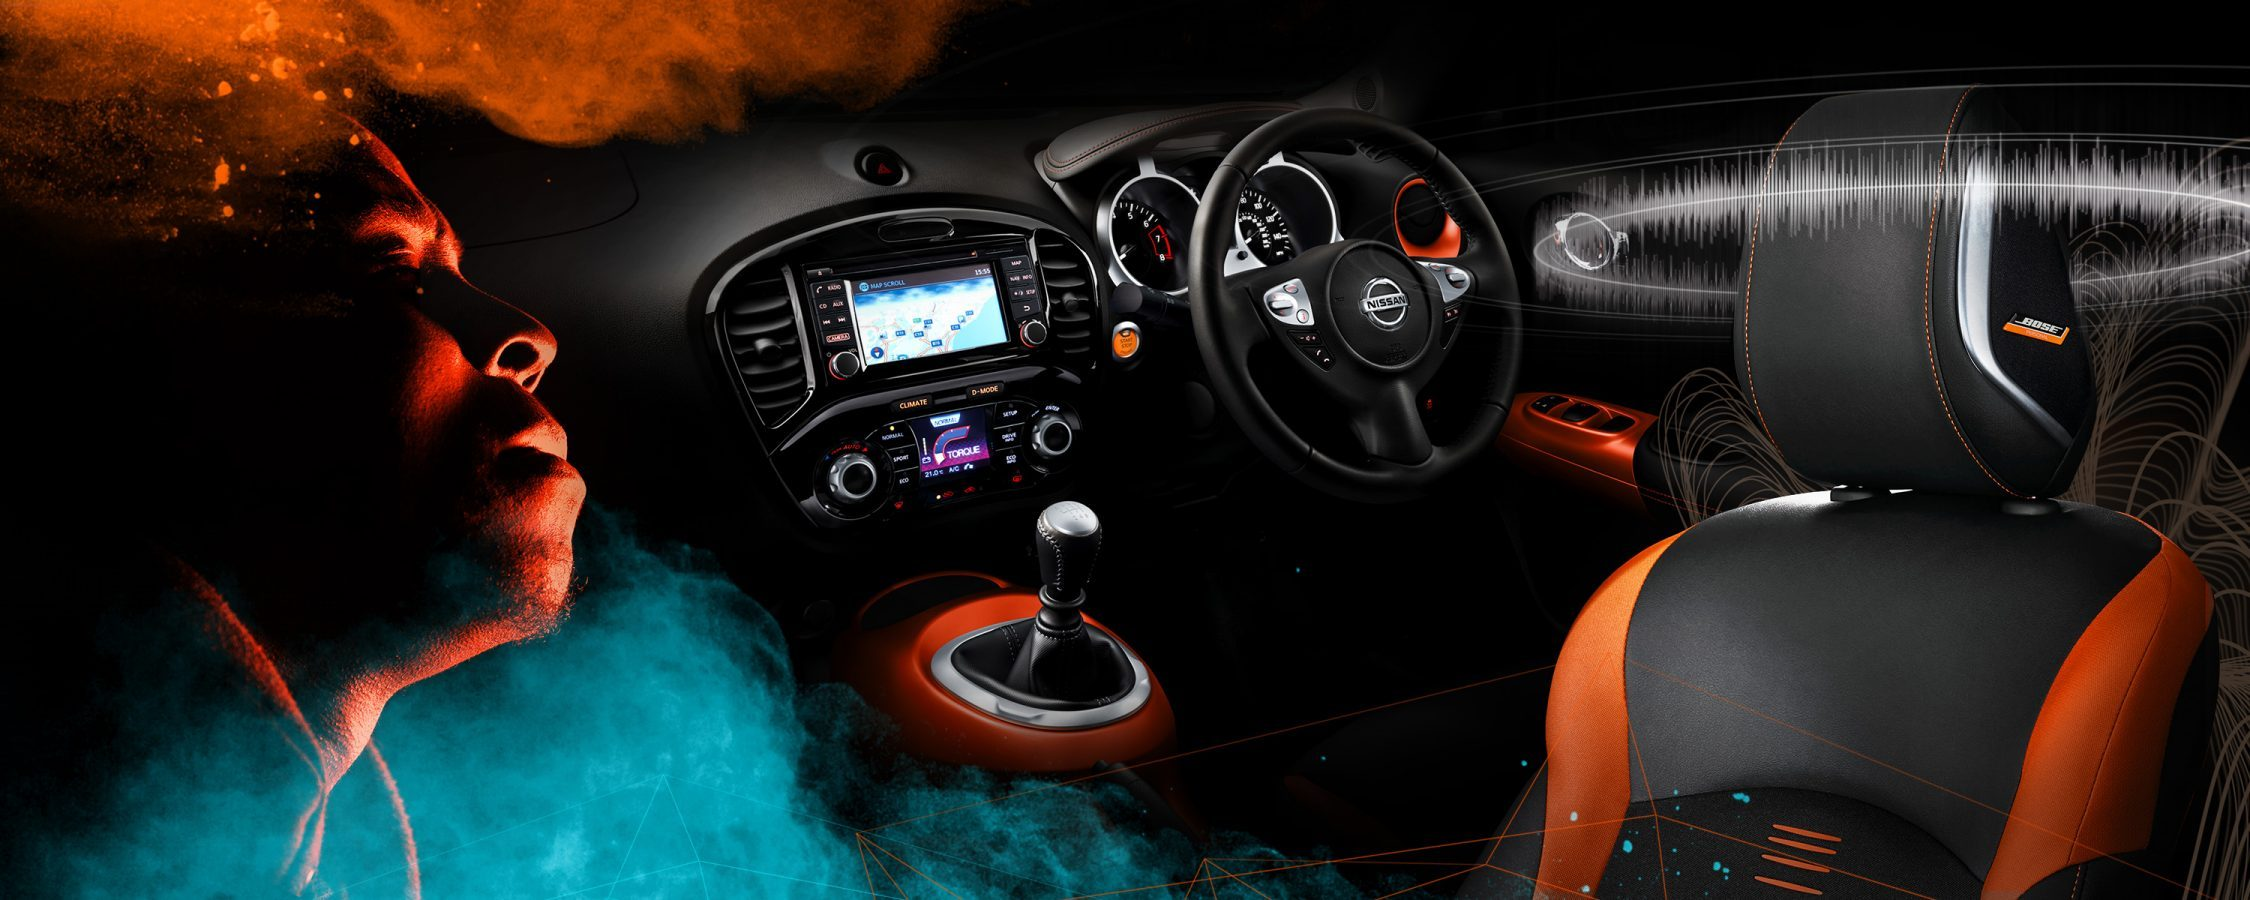 Black leather with orange accents interior of the JUKE with lit up sat nav display and audio soundwaves surrounding the driver's headrest.